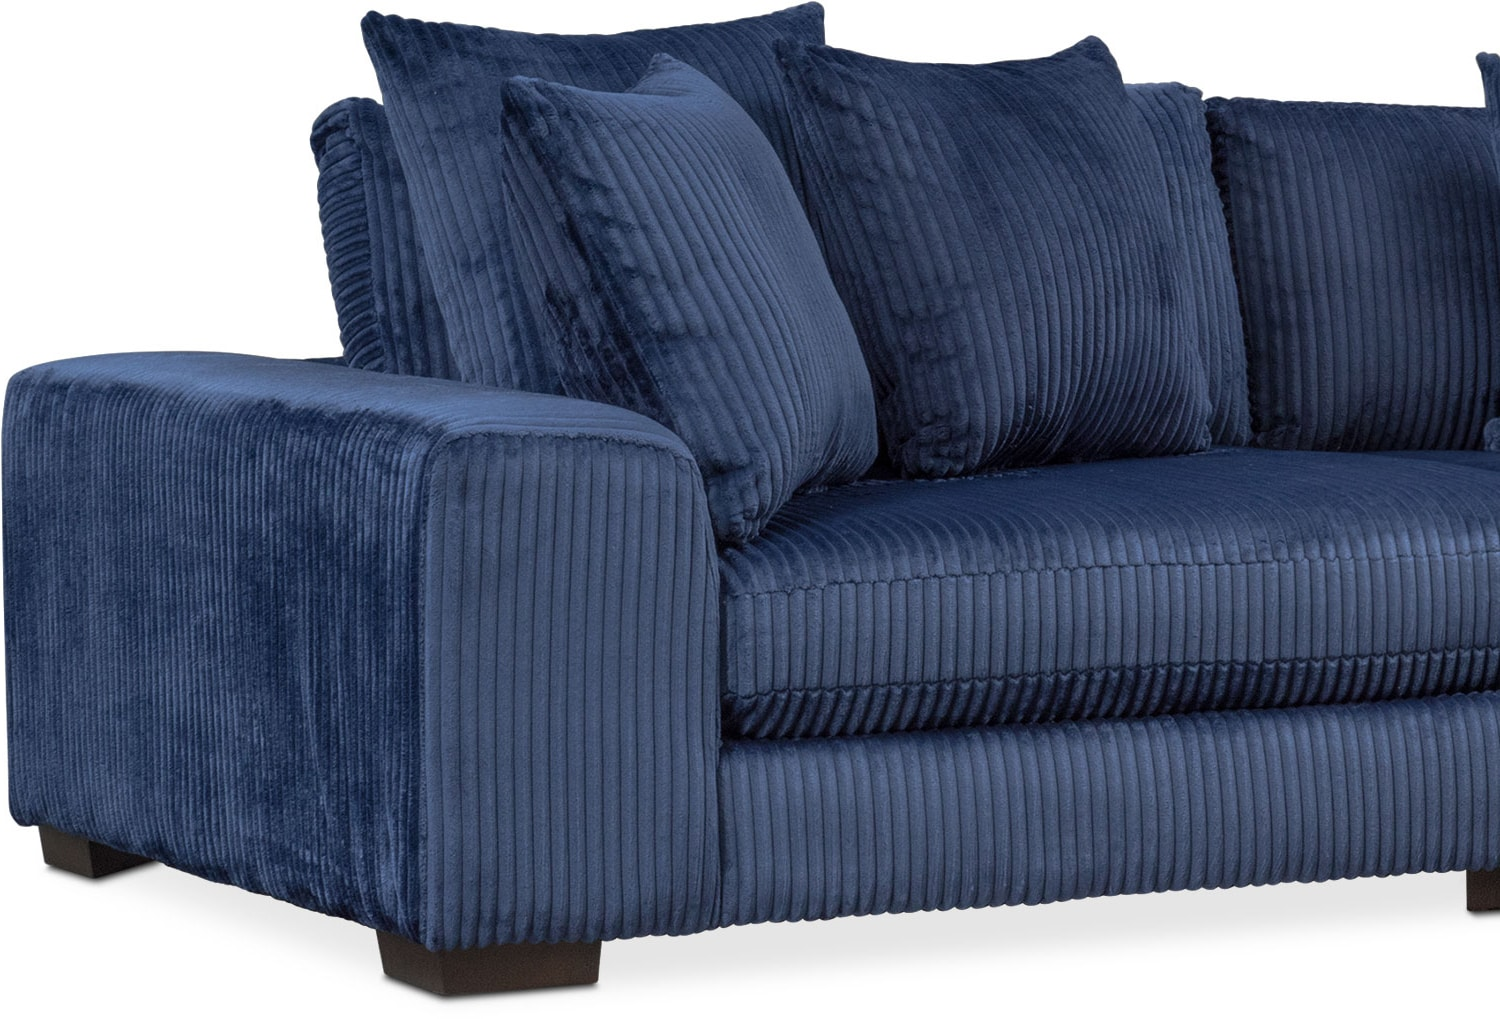 Lounge 2 Piece Sectional With Right Facing Chaise Navy